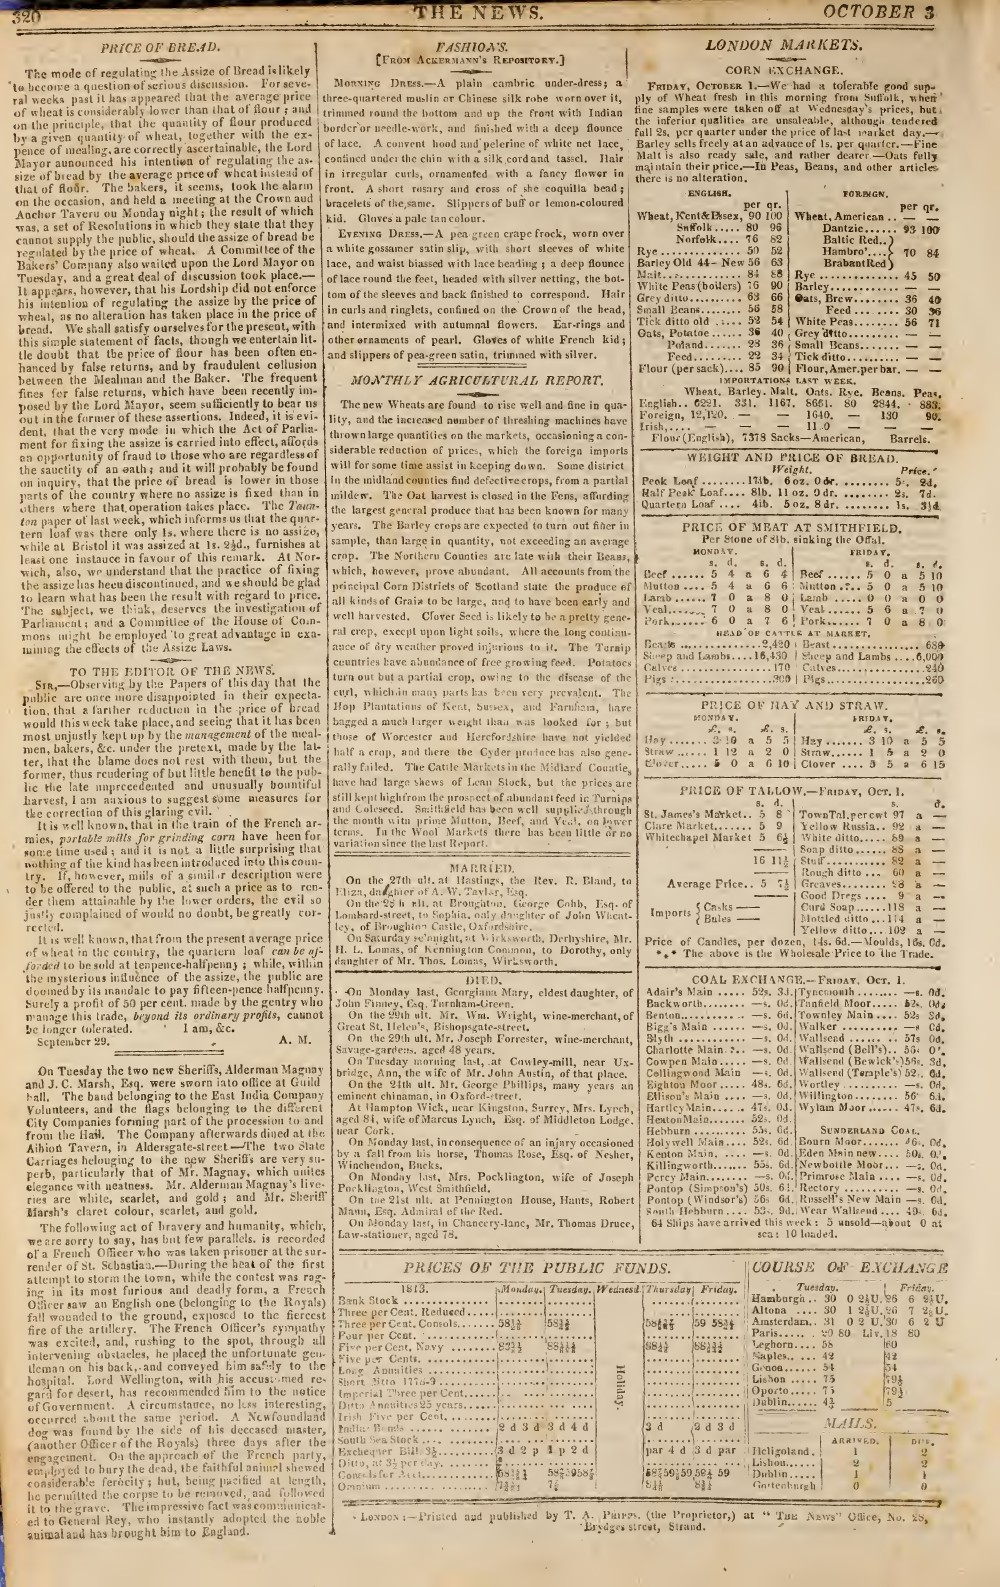 The News, 3 October 1813, No. 431